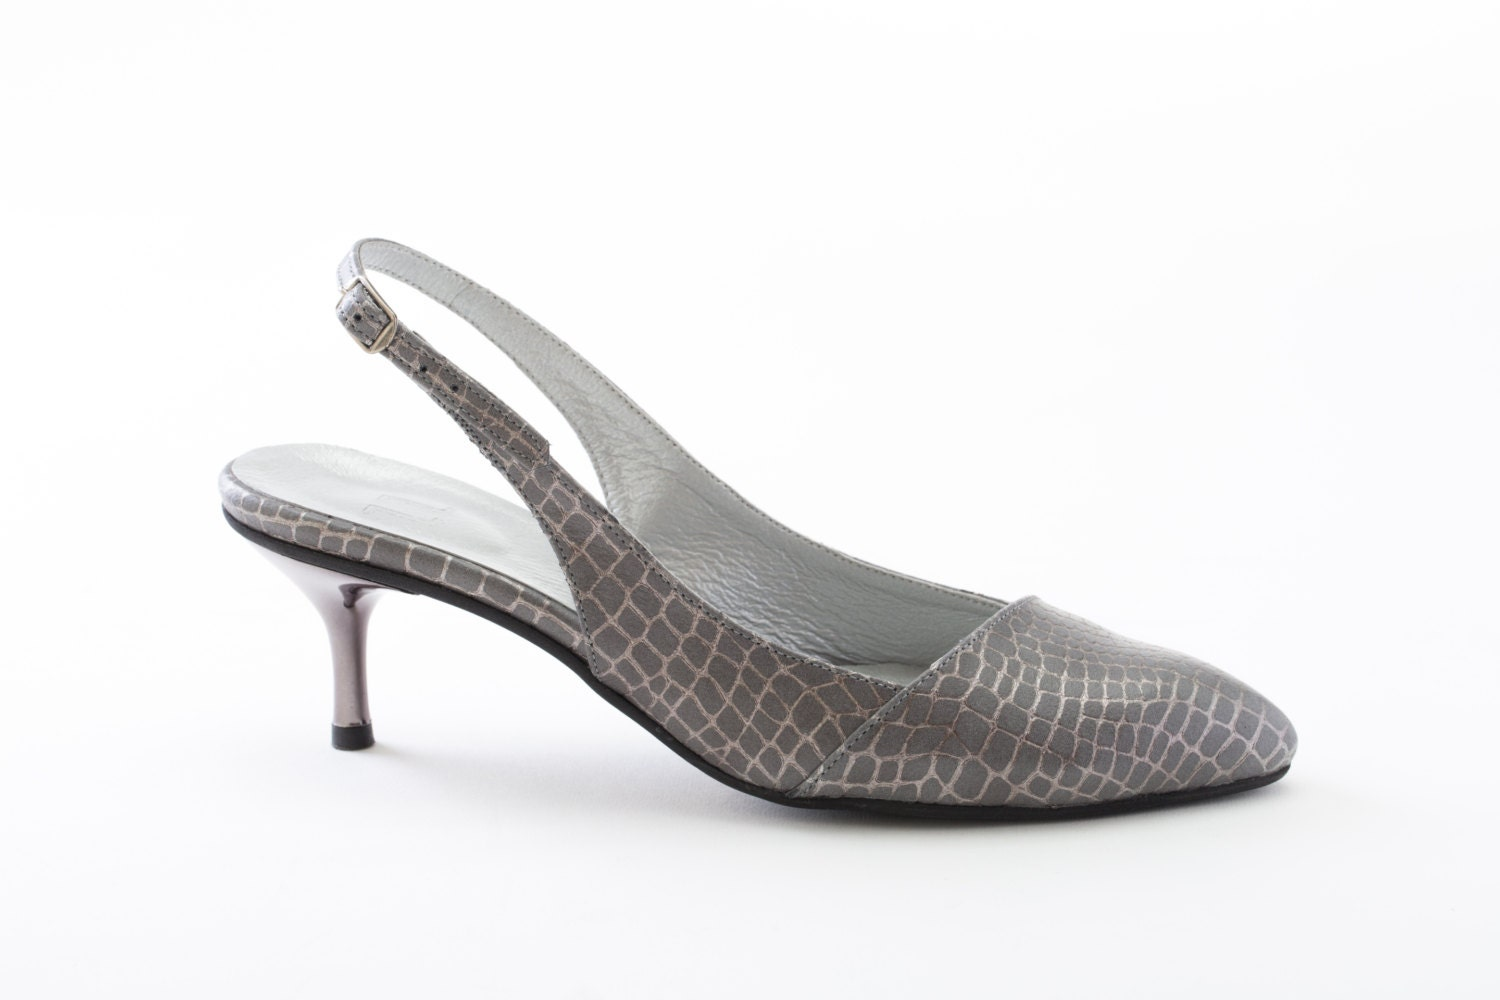 Silver Grey Kitten Heel Shoes - Is Heel